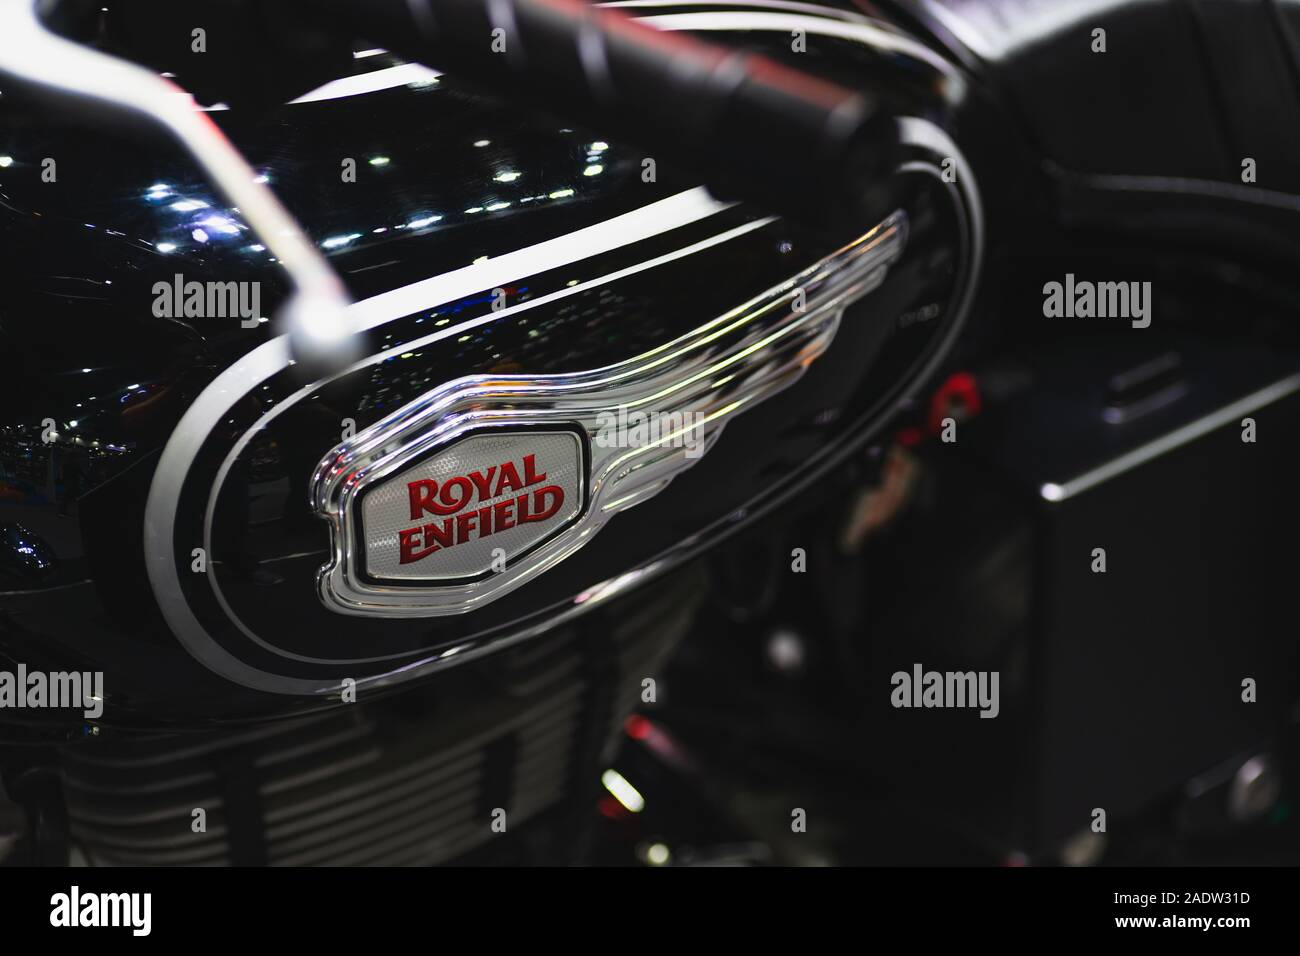 Page 9 Royal Enfield High Resolution Stock Photography And Images Alamy